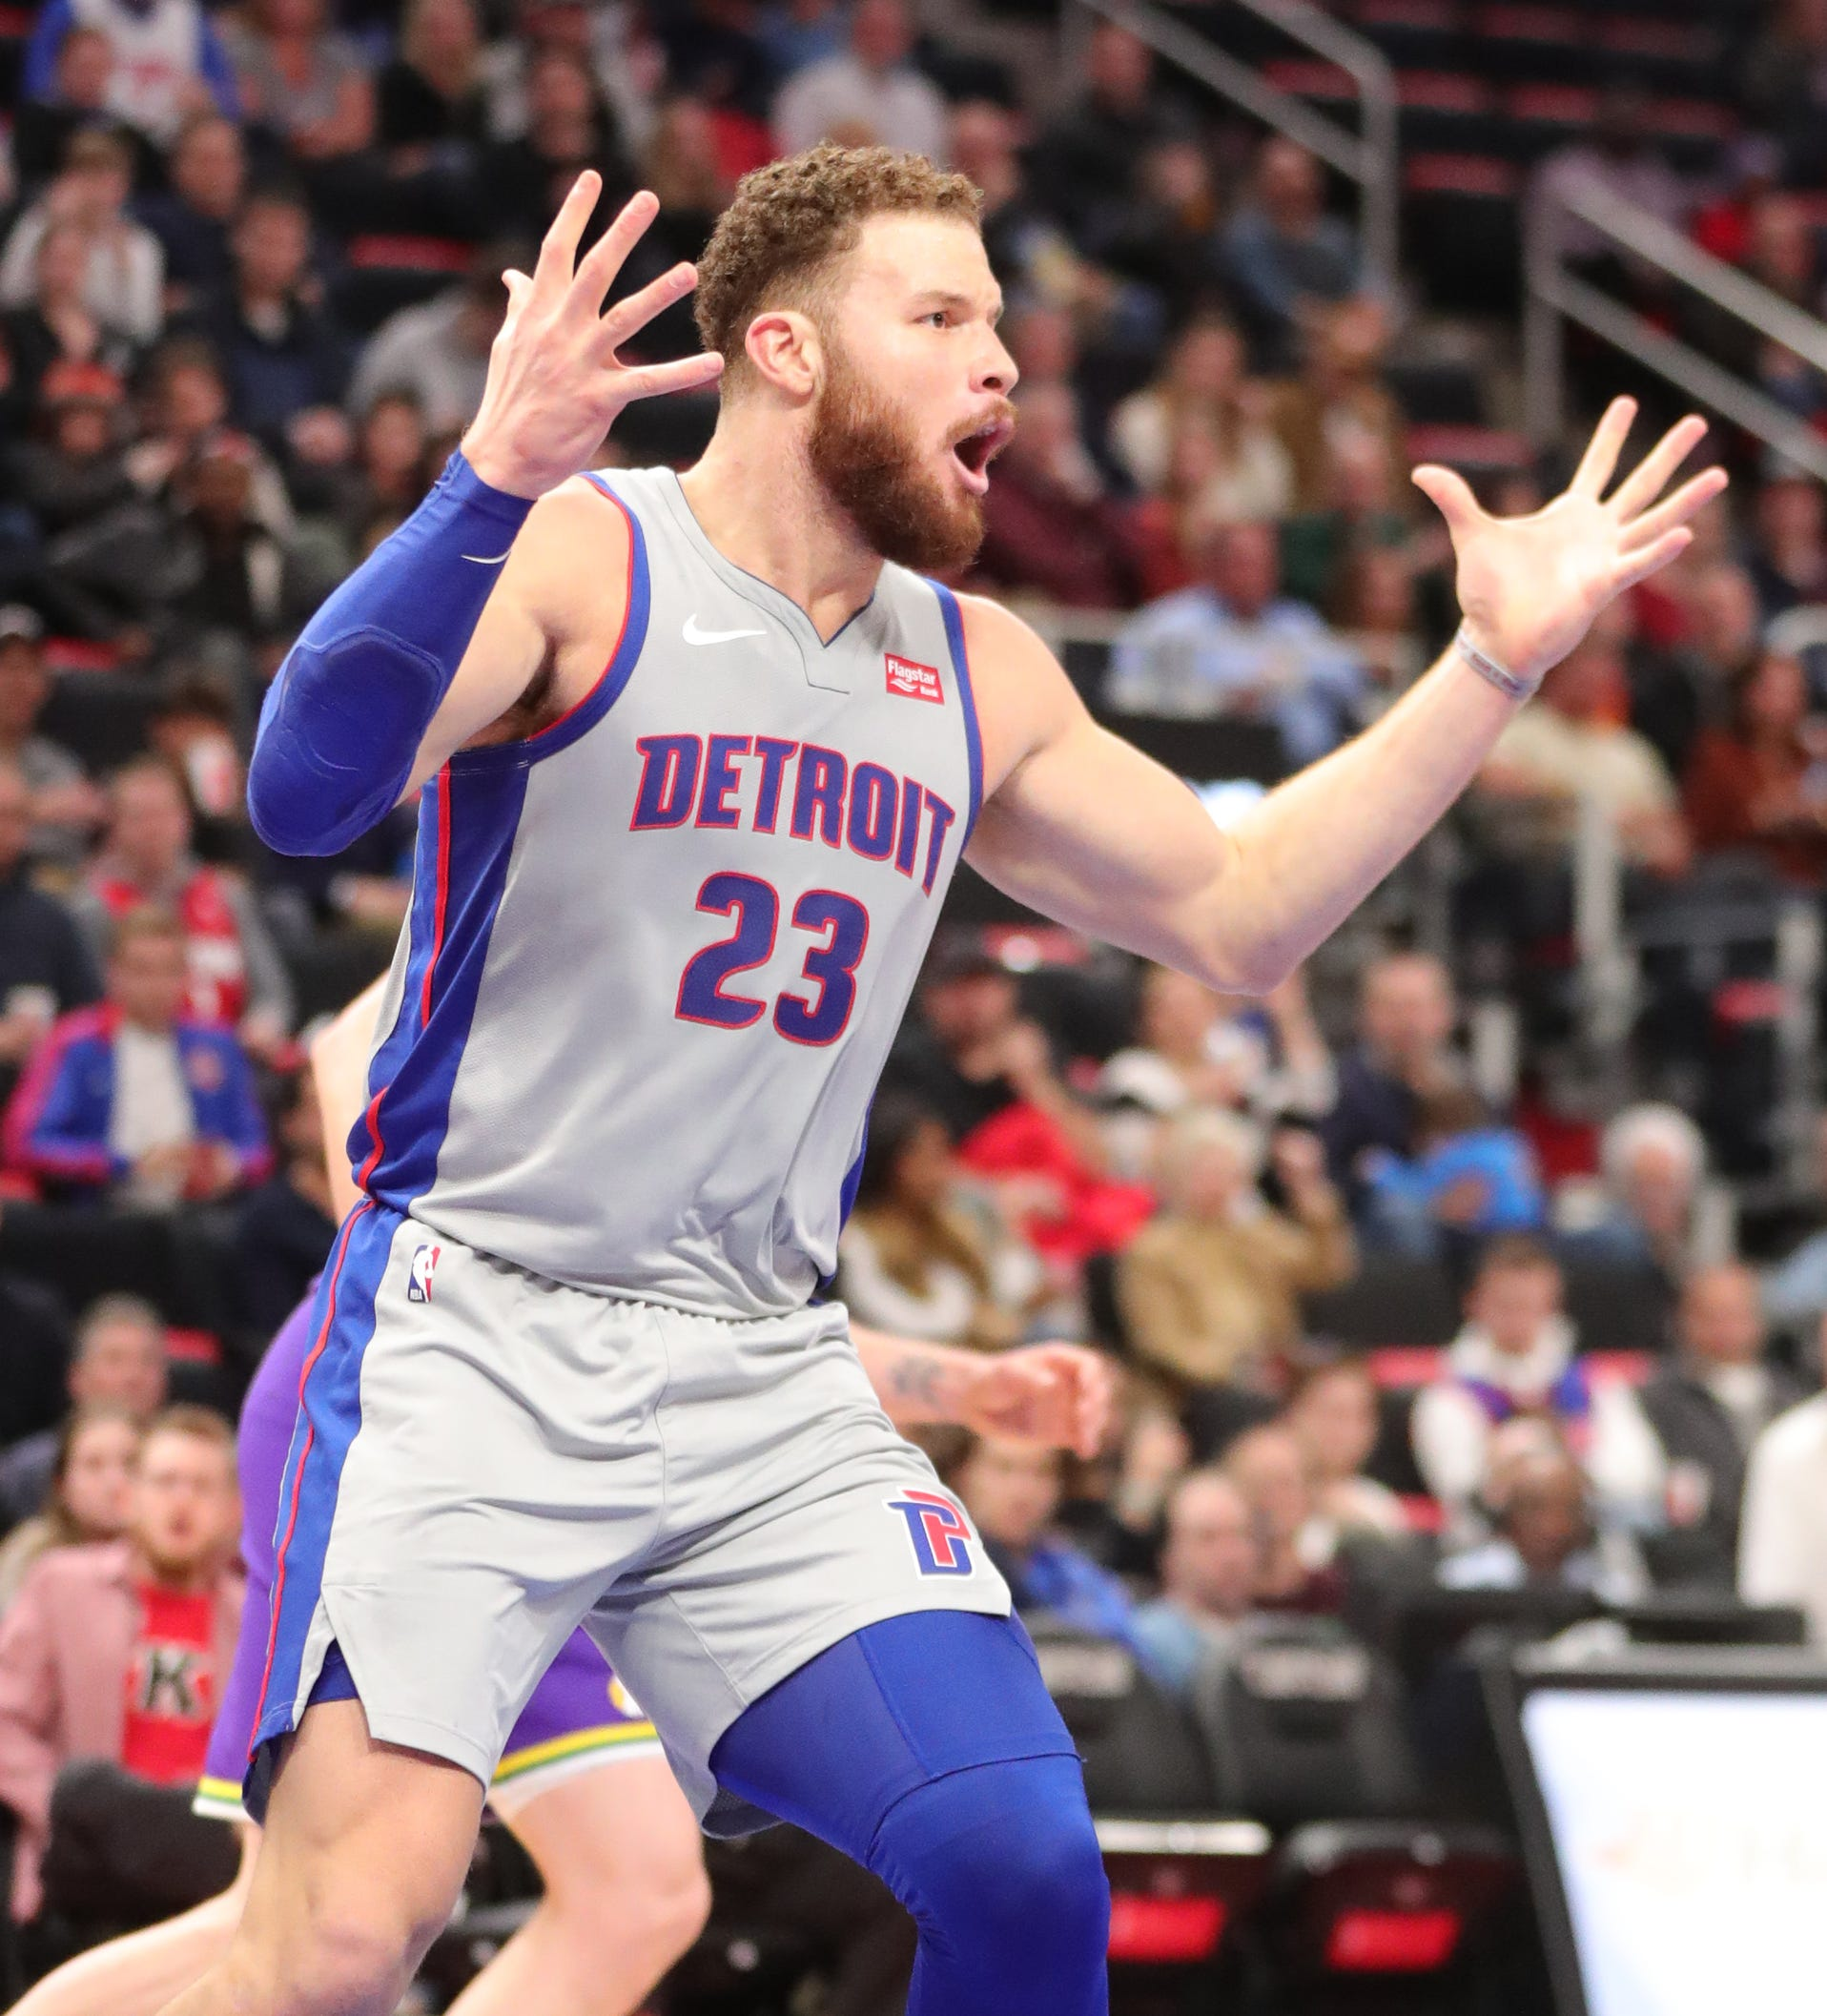 Blake Griffin reacts after scoring during the fourth period of the Pistons' 110-105 loss to the Jazz on Jan. 5.